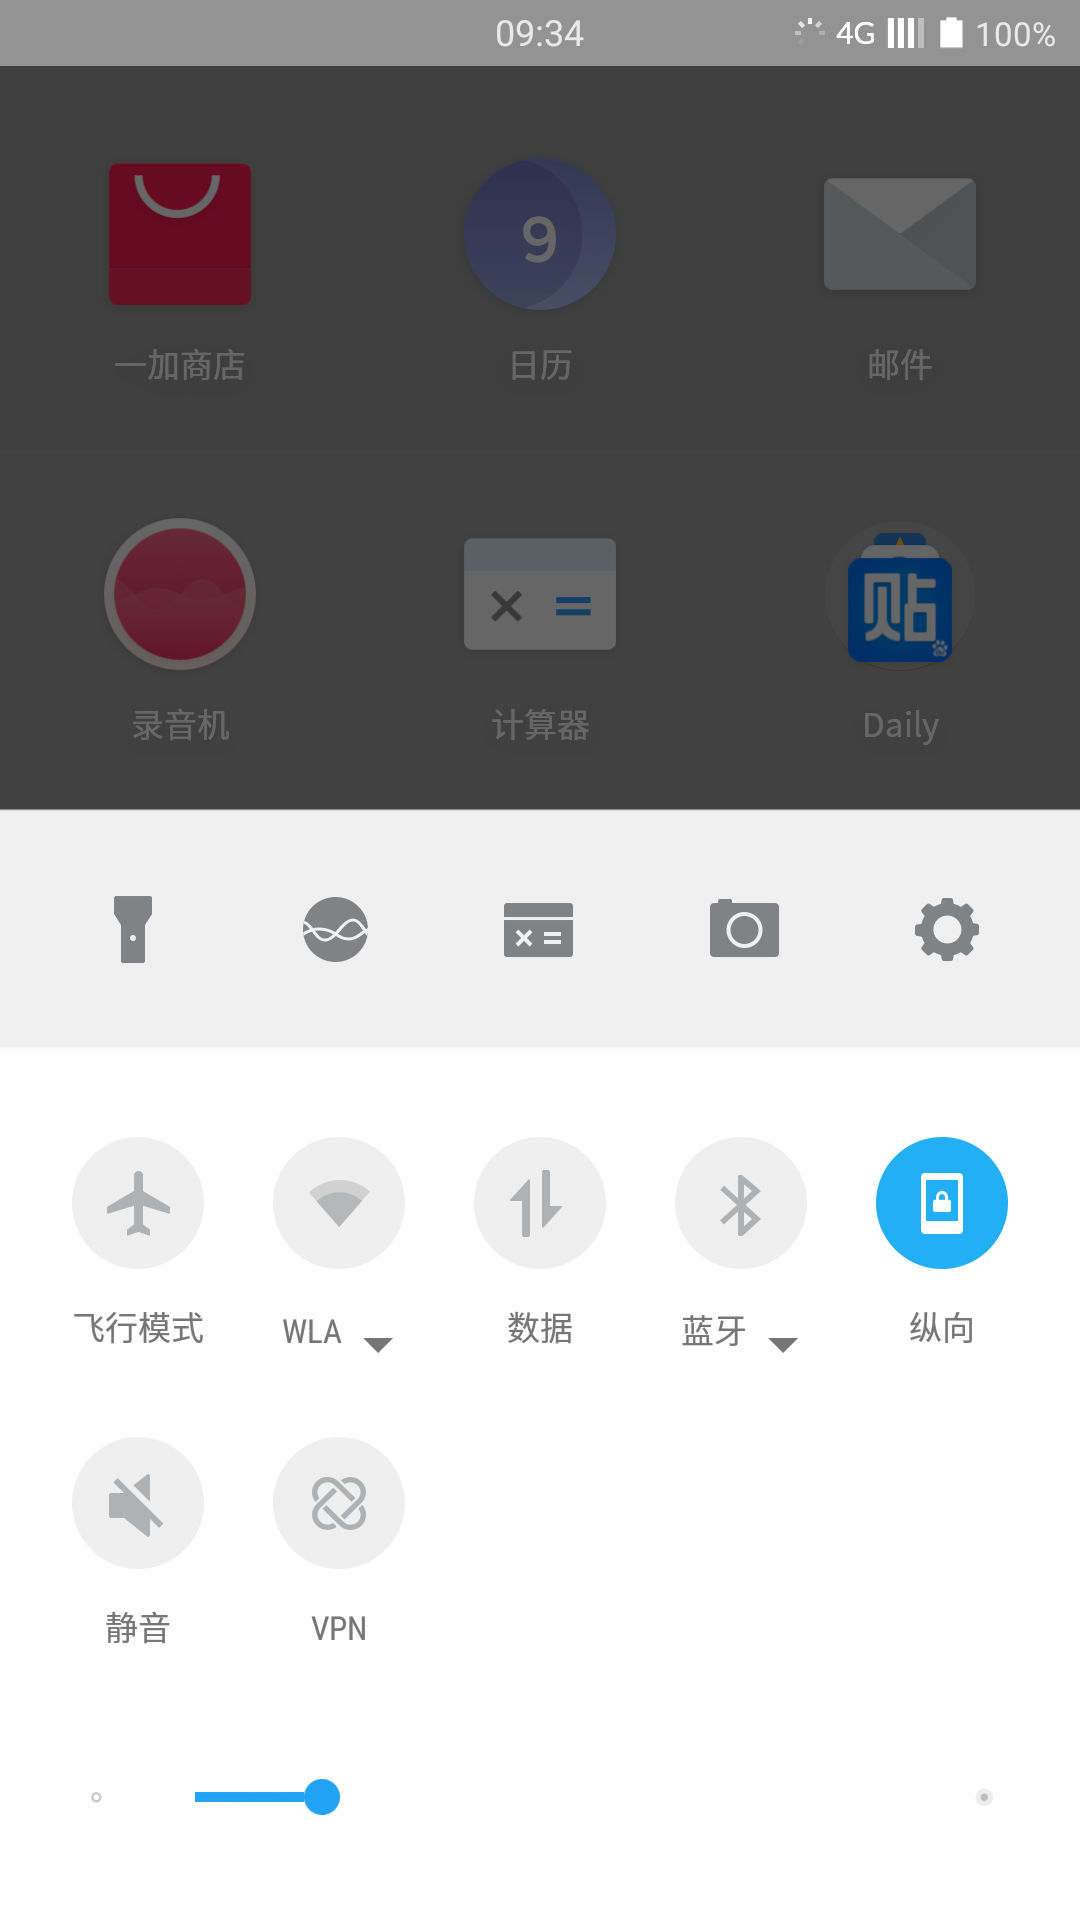 Screenshot_2015-06-09-09-34-07.png